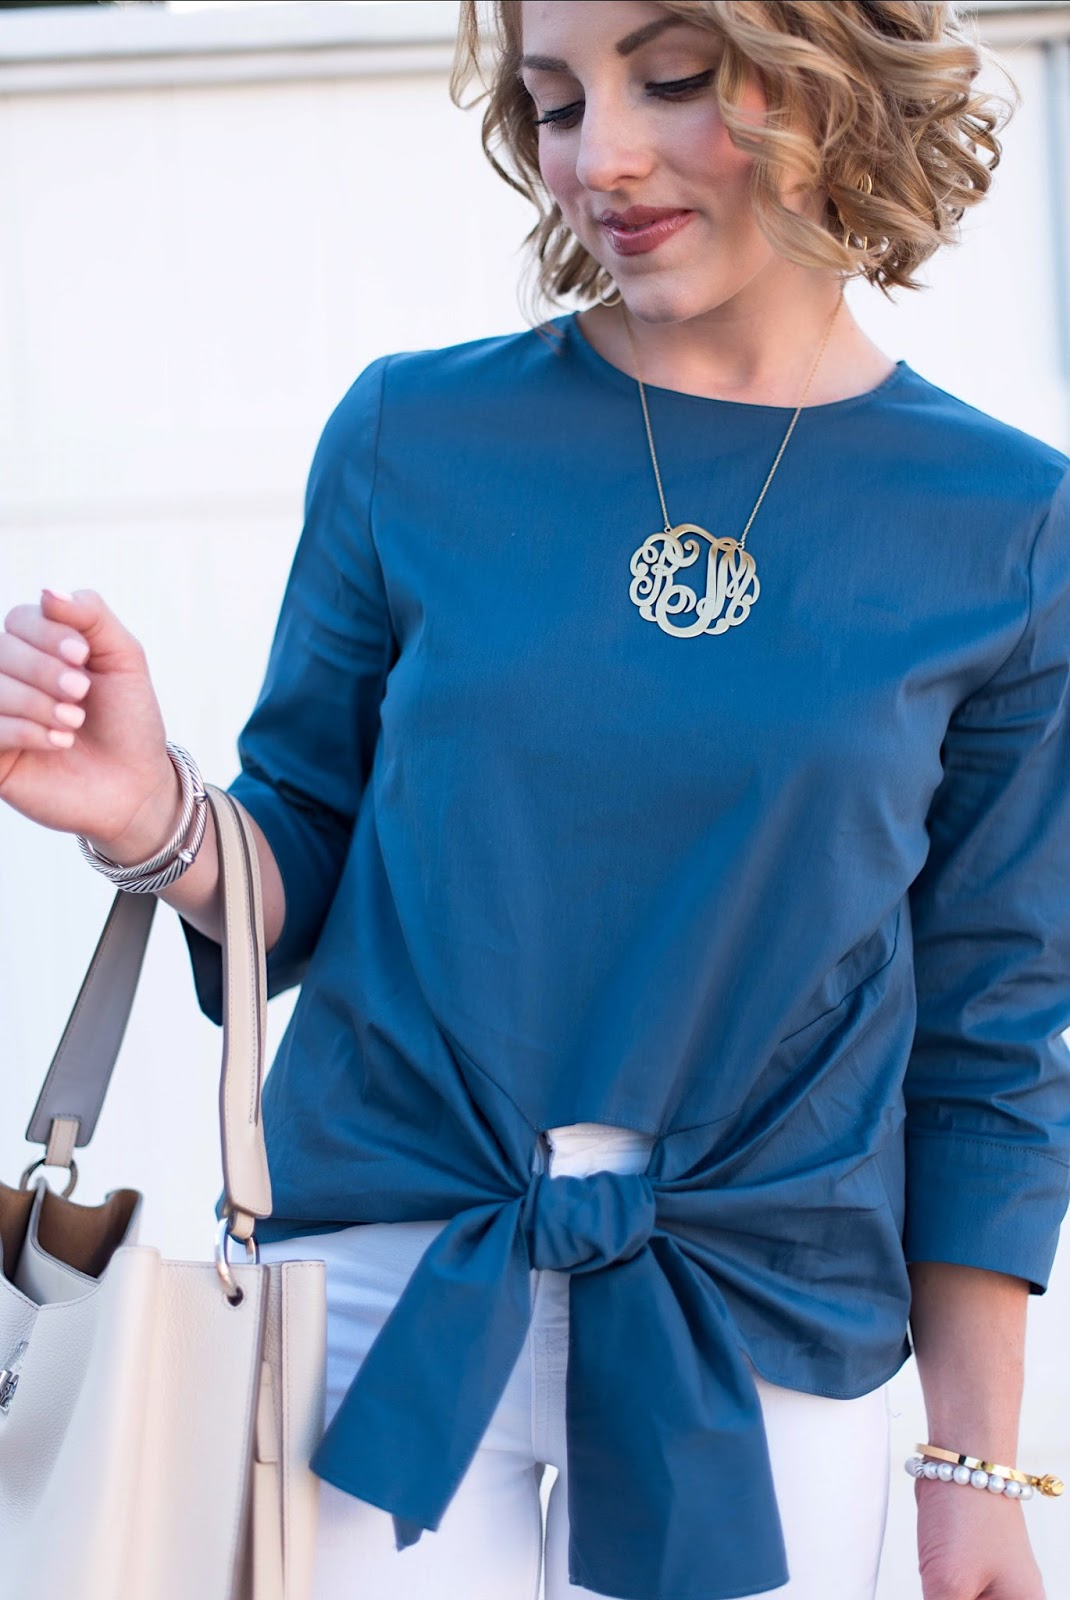 Monogram Necklace - Click through to see more on Something Delightful!